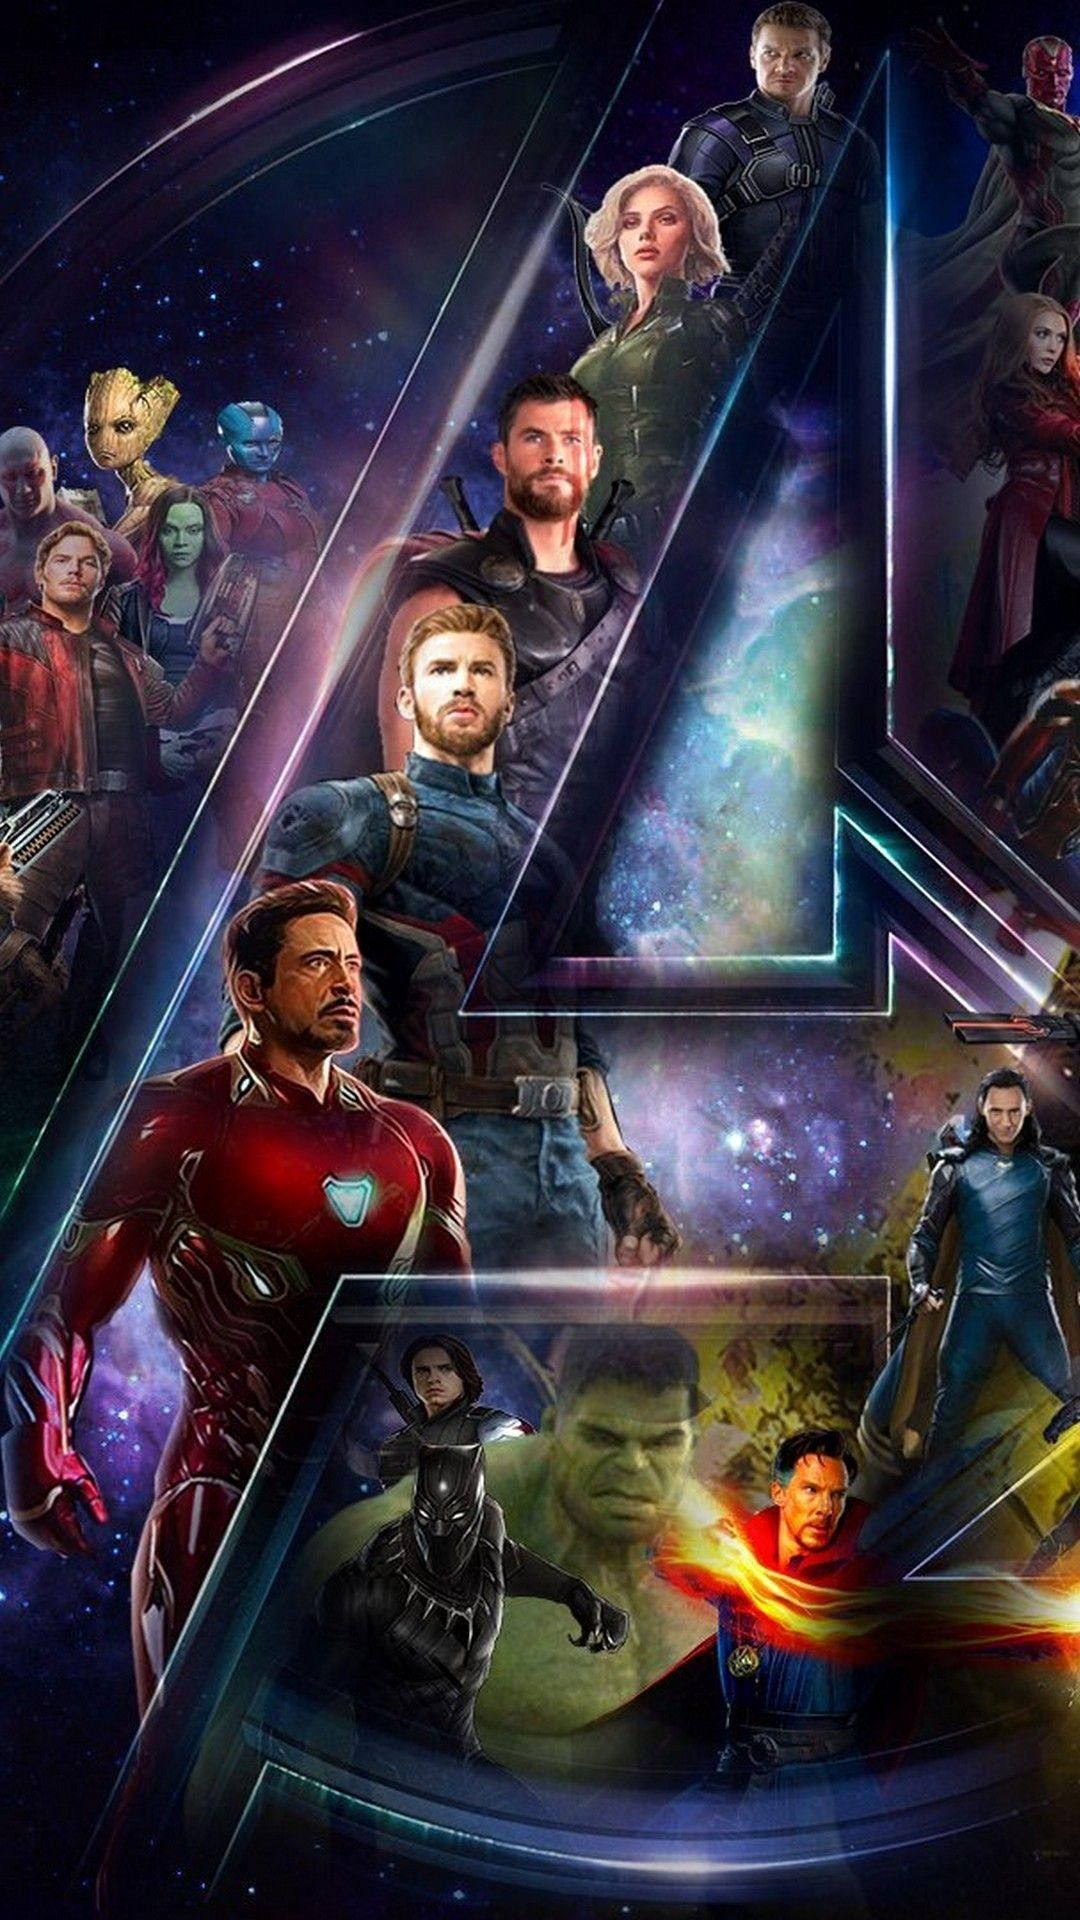 Fresh Avengers Endgame Wallpapers For Android Apk Download Marvel Iphone Wallpaper Avengers Wallpaper Avengers Pictures